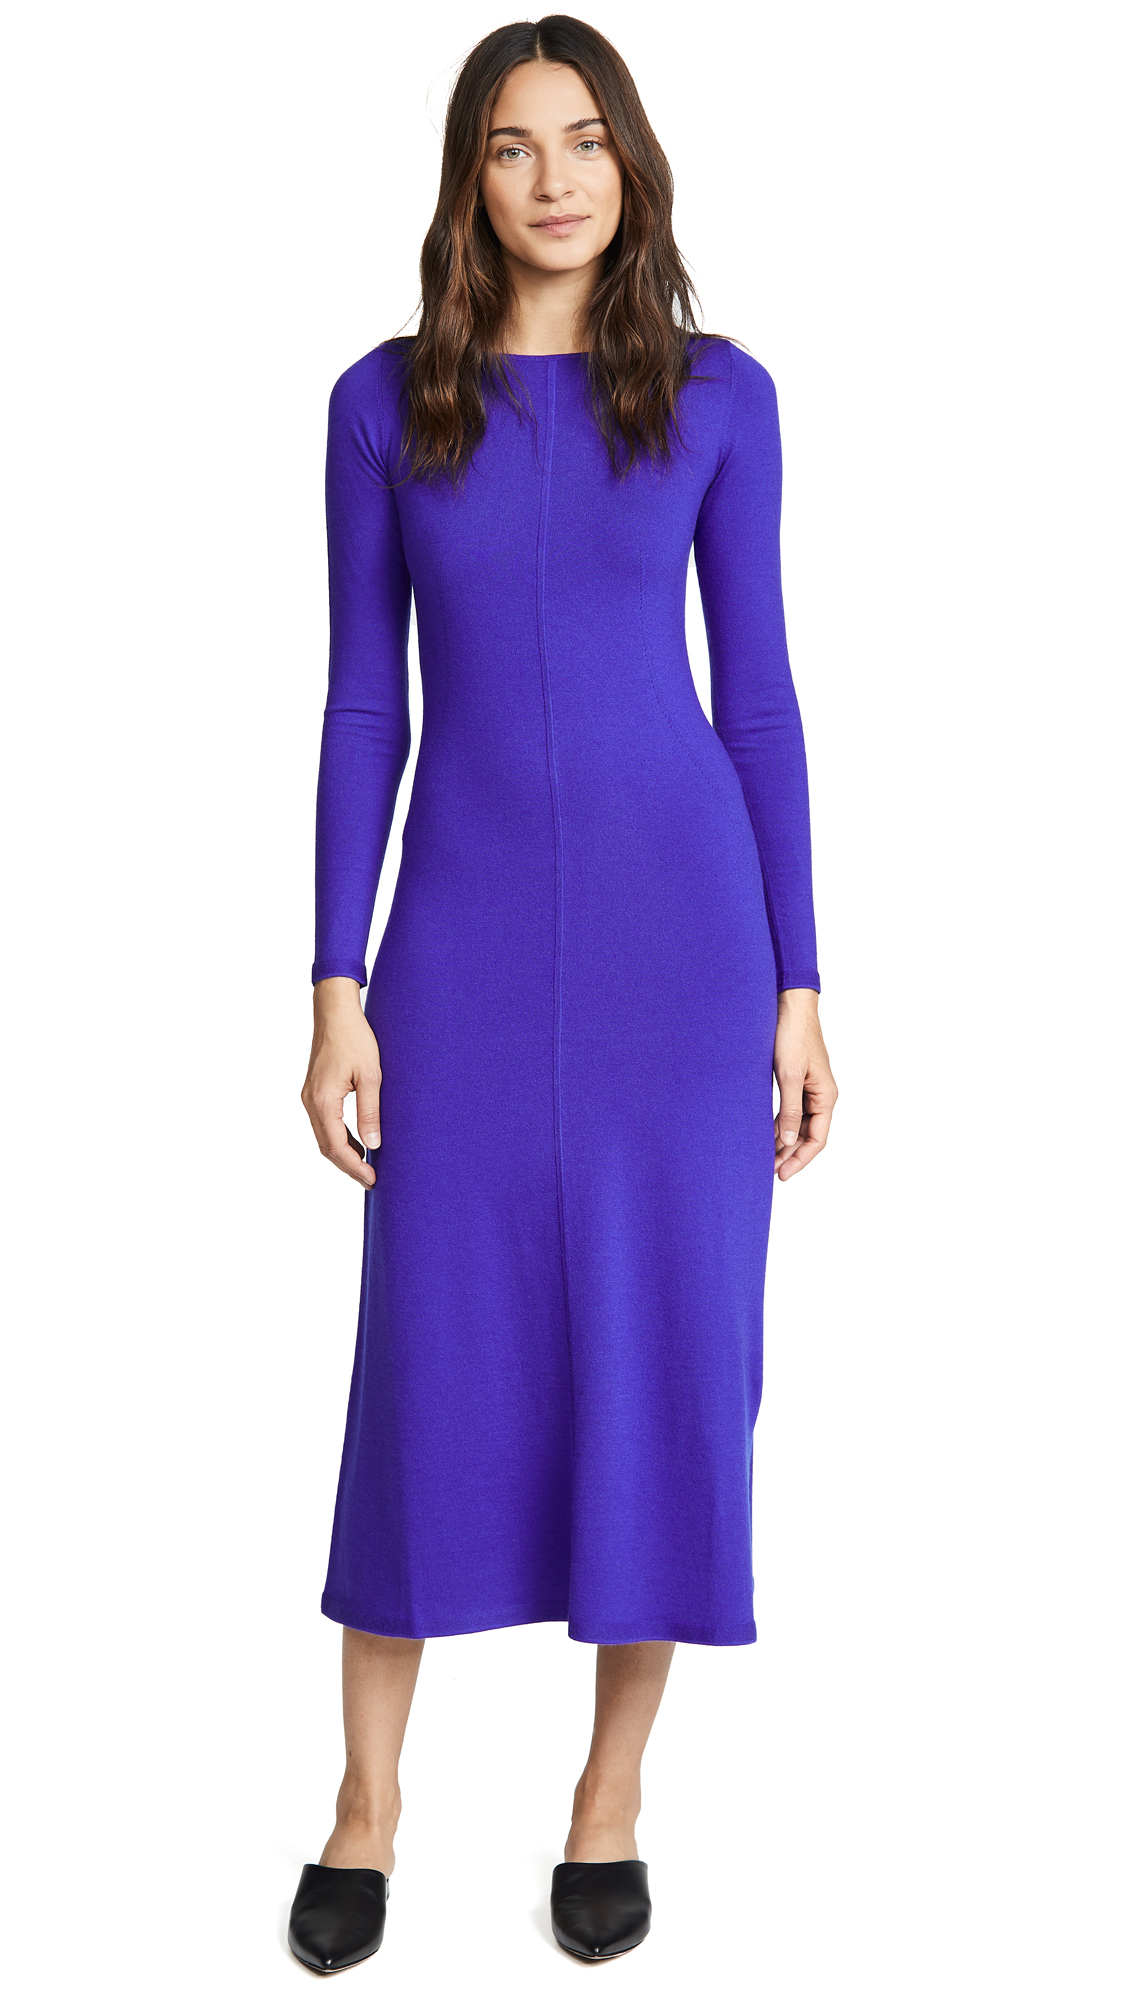 TSE Cashmere Long Sleeve Midi Dress